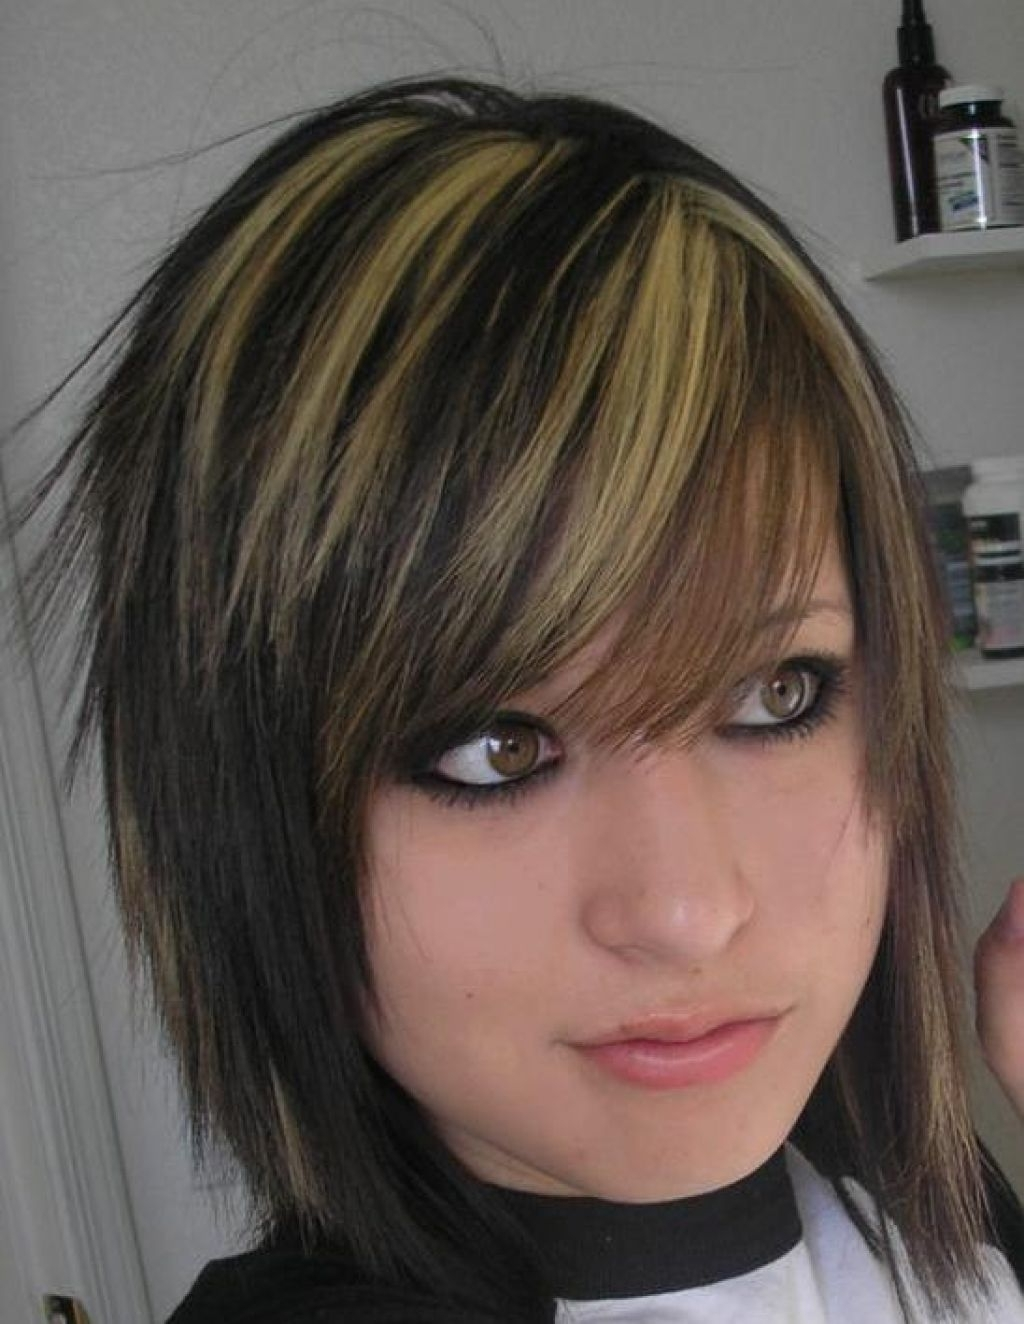 Hairstyles For Girls With Medium Hair 2017 With Regard To Well Known Shaggy Emo Hairstyles (View 6 of 15)